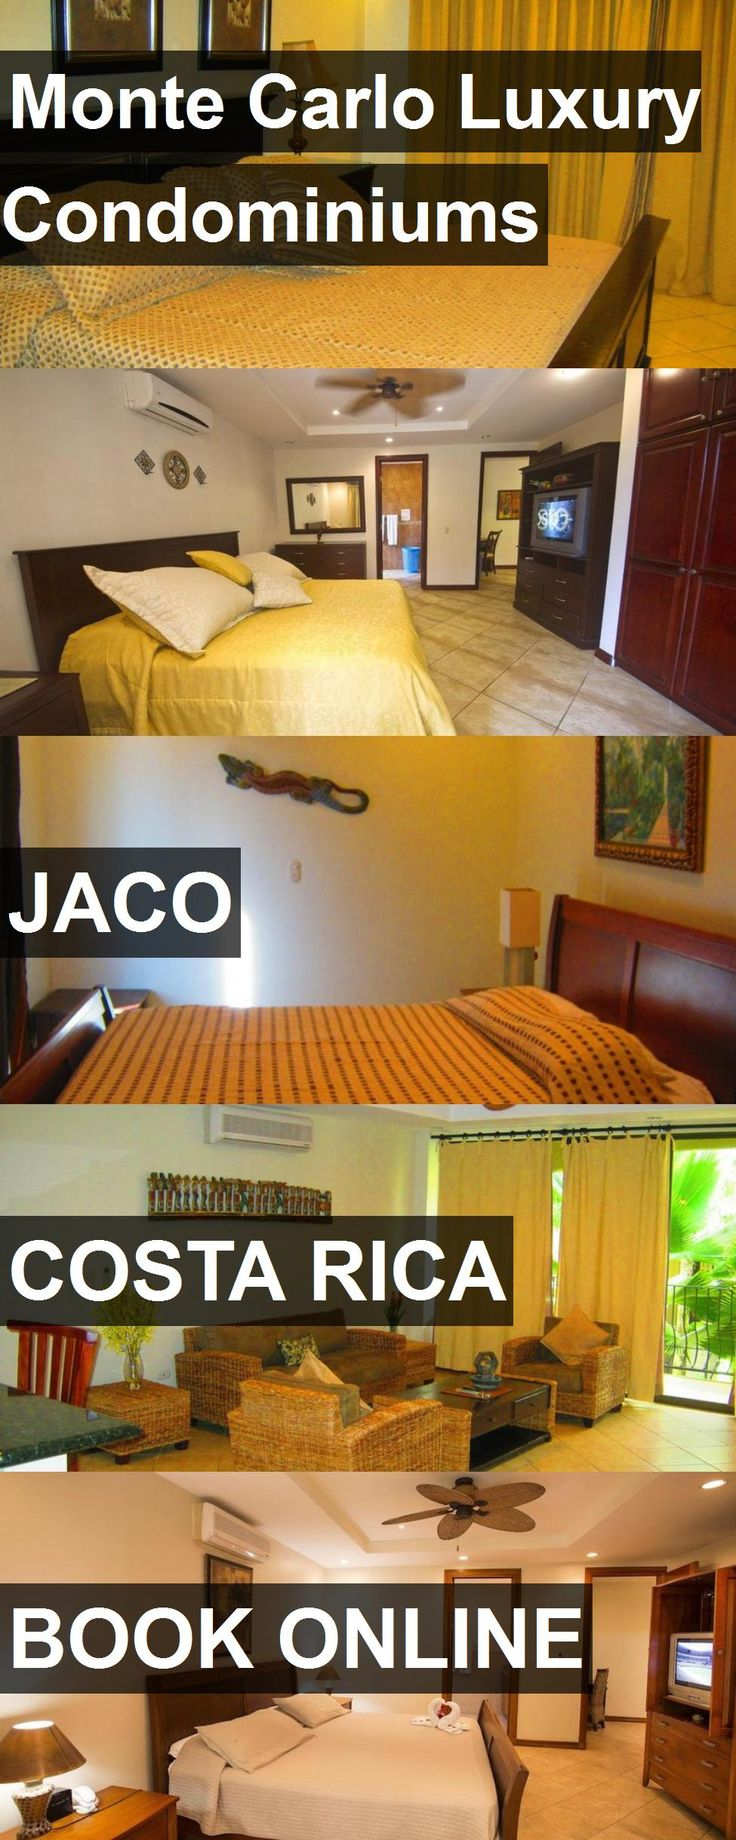 Hotel Monte Carlo Luxury Condominiums in Jaco, Costa Rica. For more information, photos, reviews and best prices please follow the link. #CostaRica #Jaco #travel #vacation #hotel